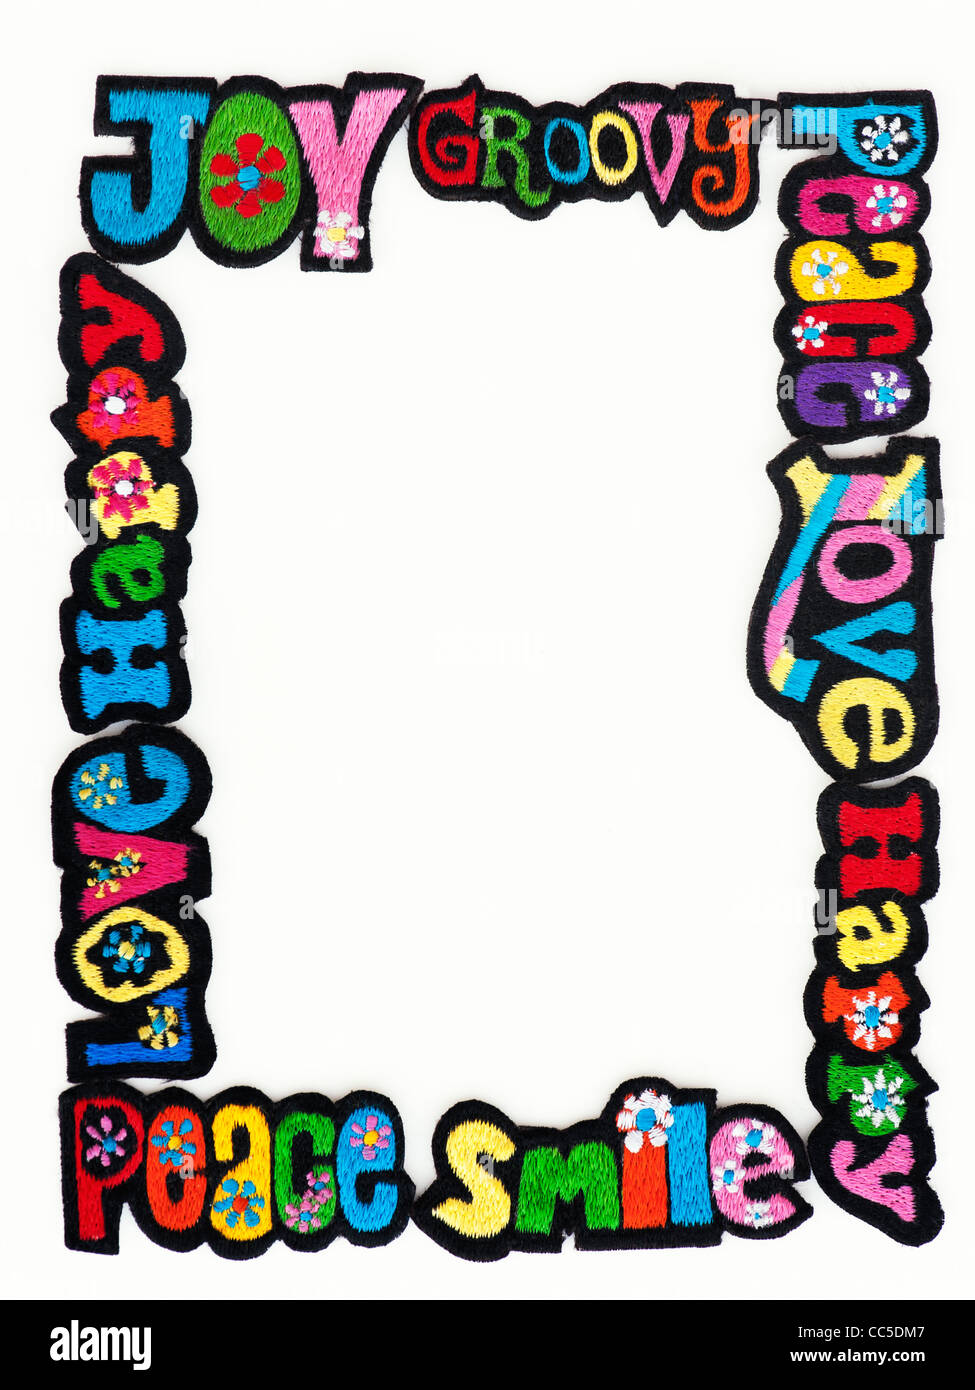 Embroidery iron on patches of Multicoloured Love, Peace, Happy, Smile and Joy words on a white background - Stock Image